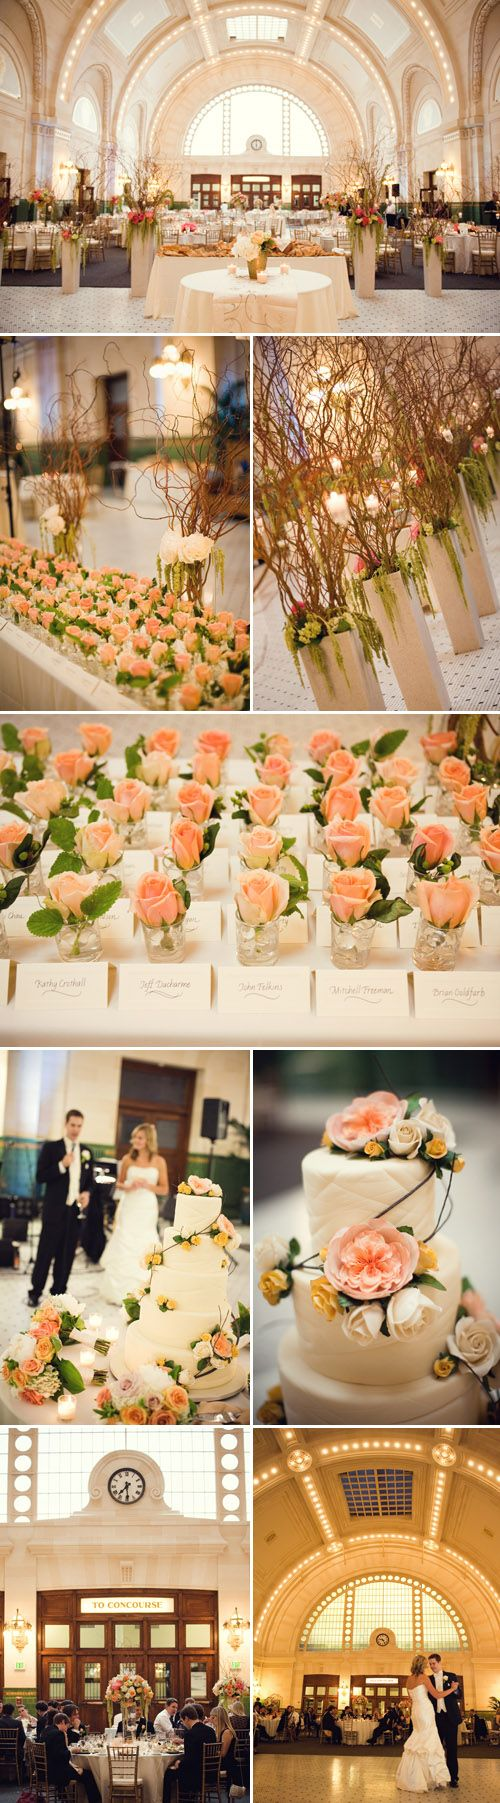 Peach details are perfect complements to the romantic wedding atmosphere, photography by Stephanie Cristalli